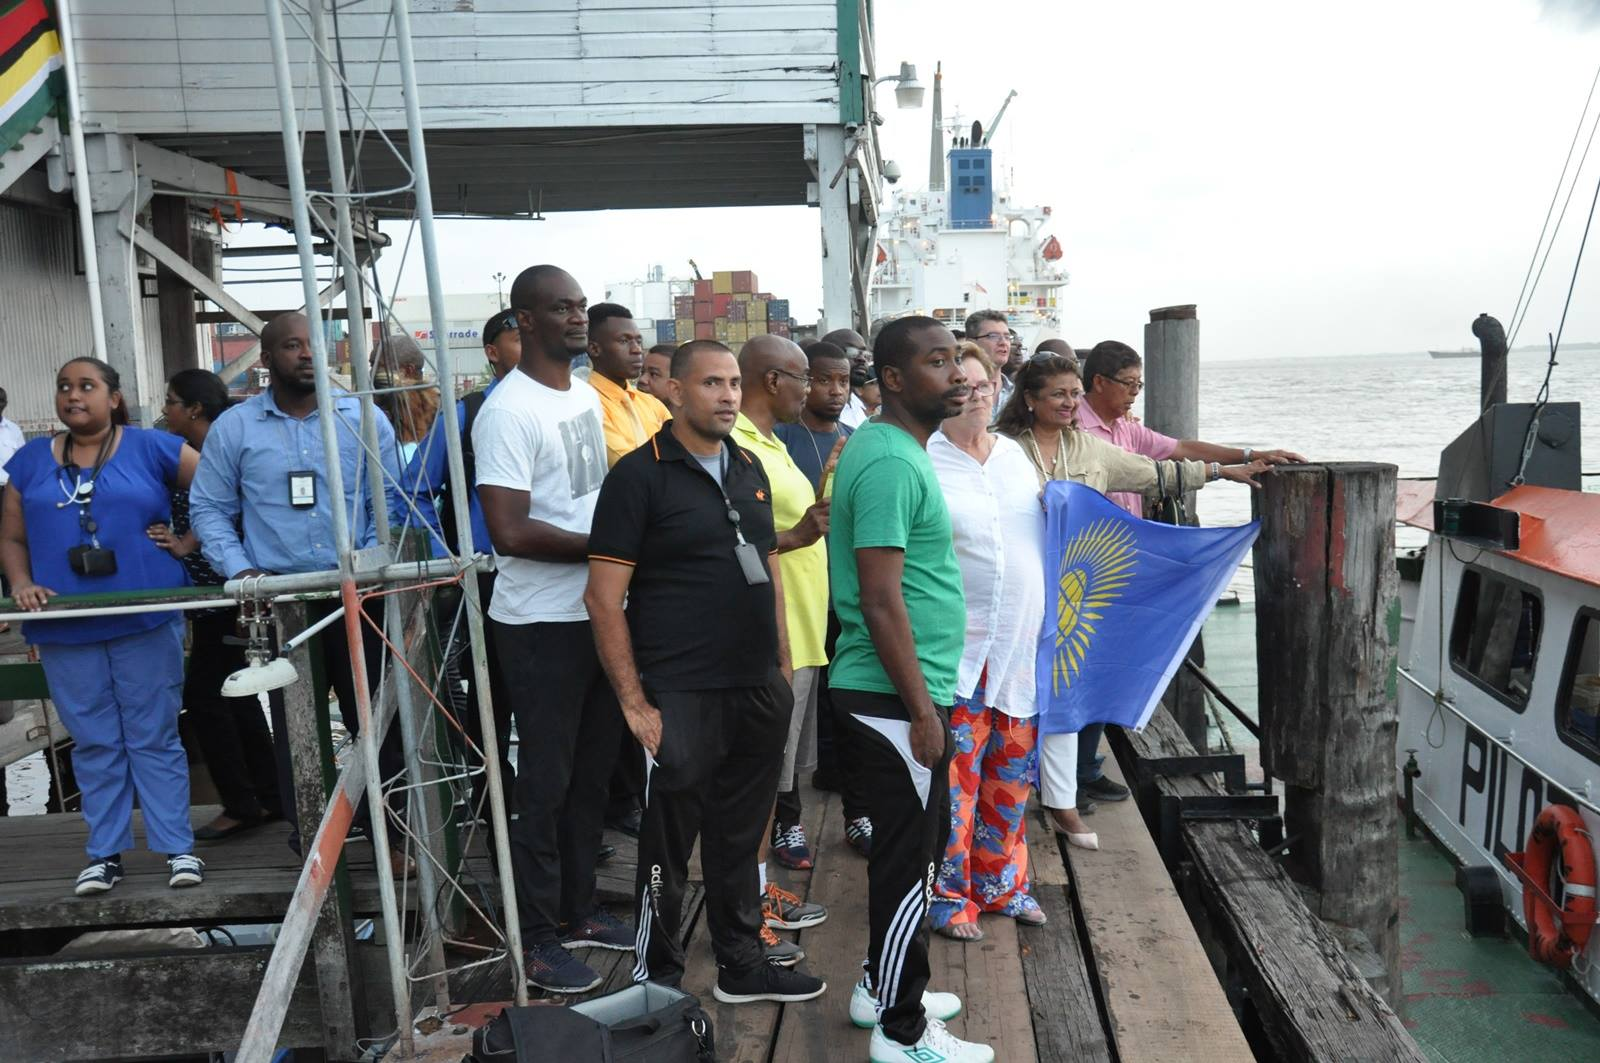 A section of the gathering at the MARAD wharf to welcome Richard.